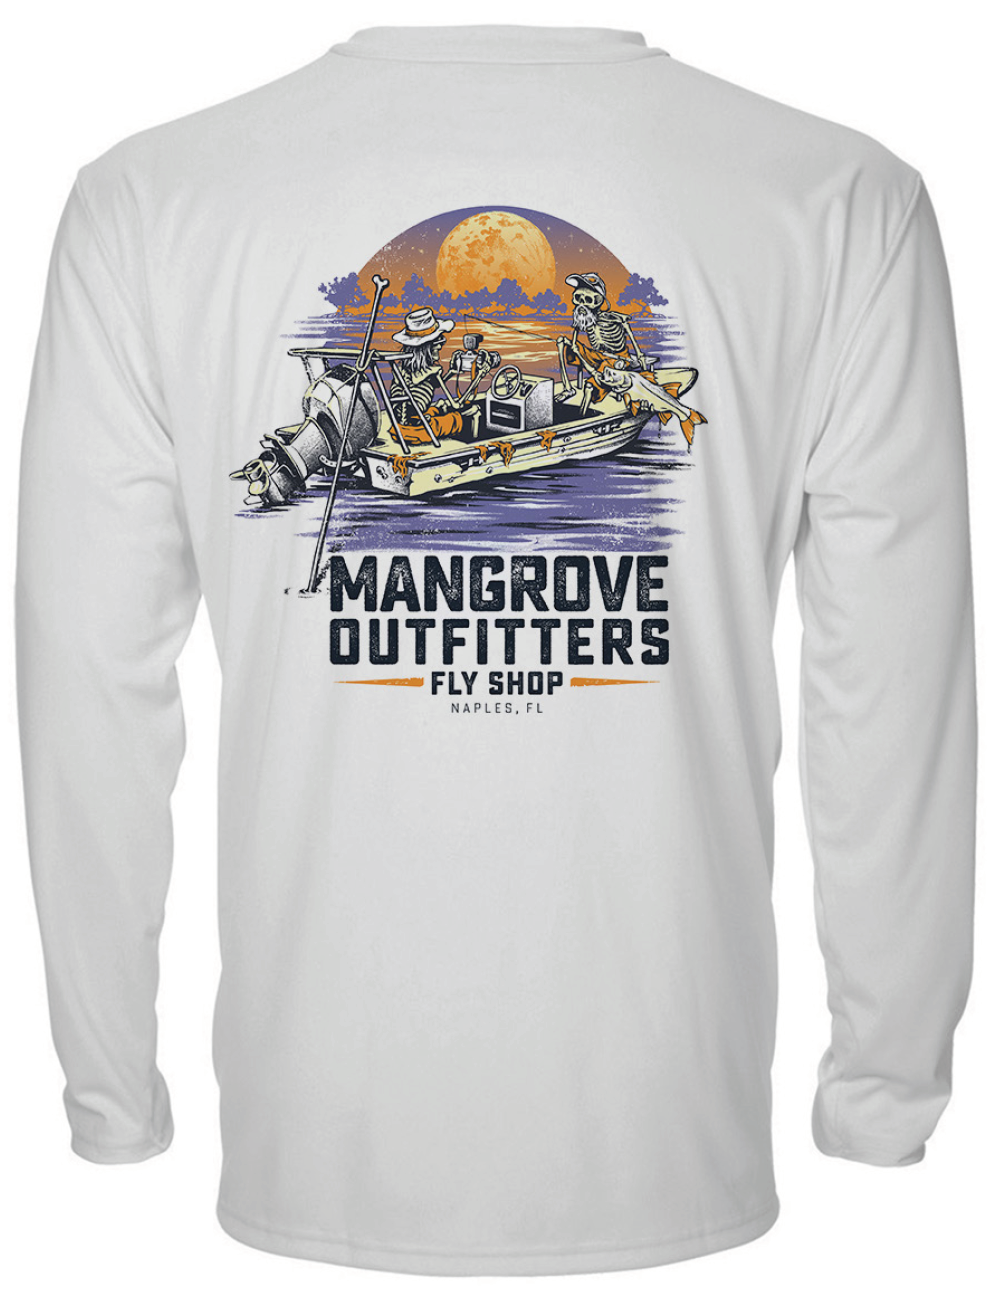 Mangrove Outfitters Early Morning Snook Performance Shirt - Crew Neck